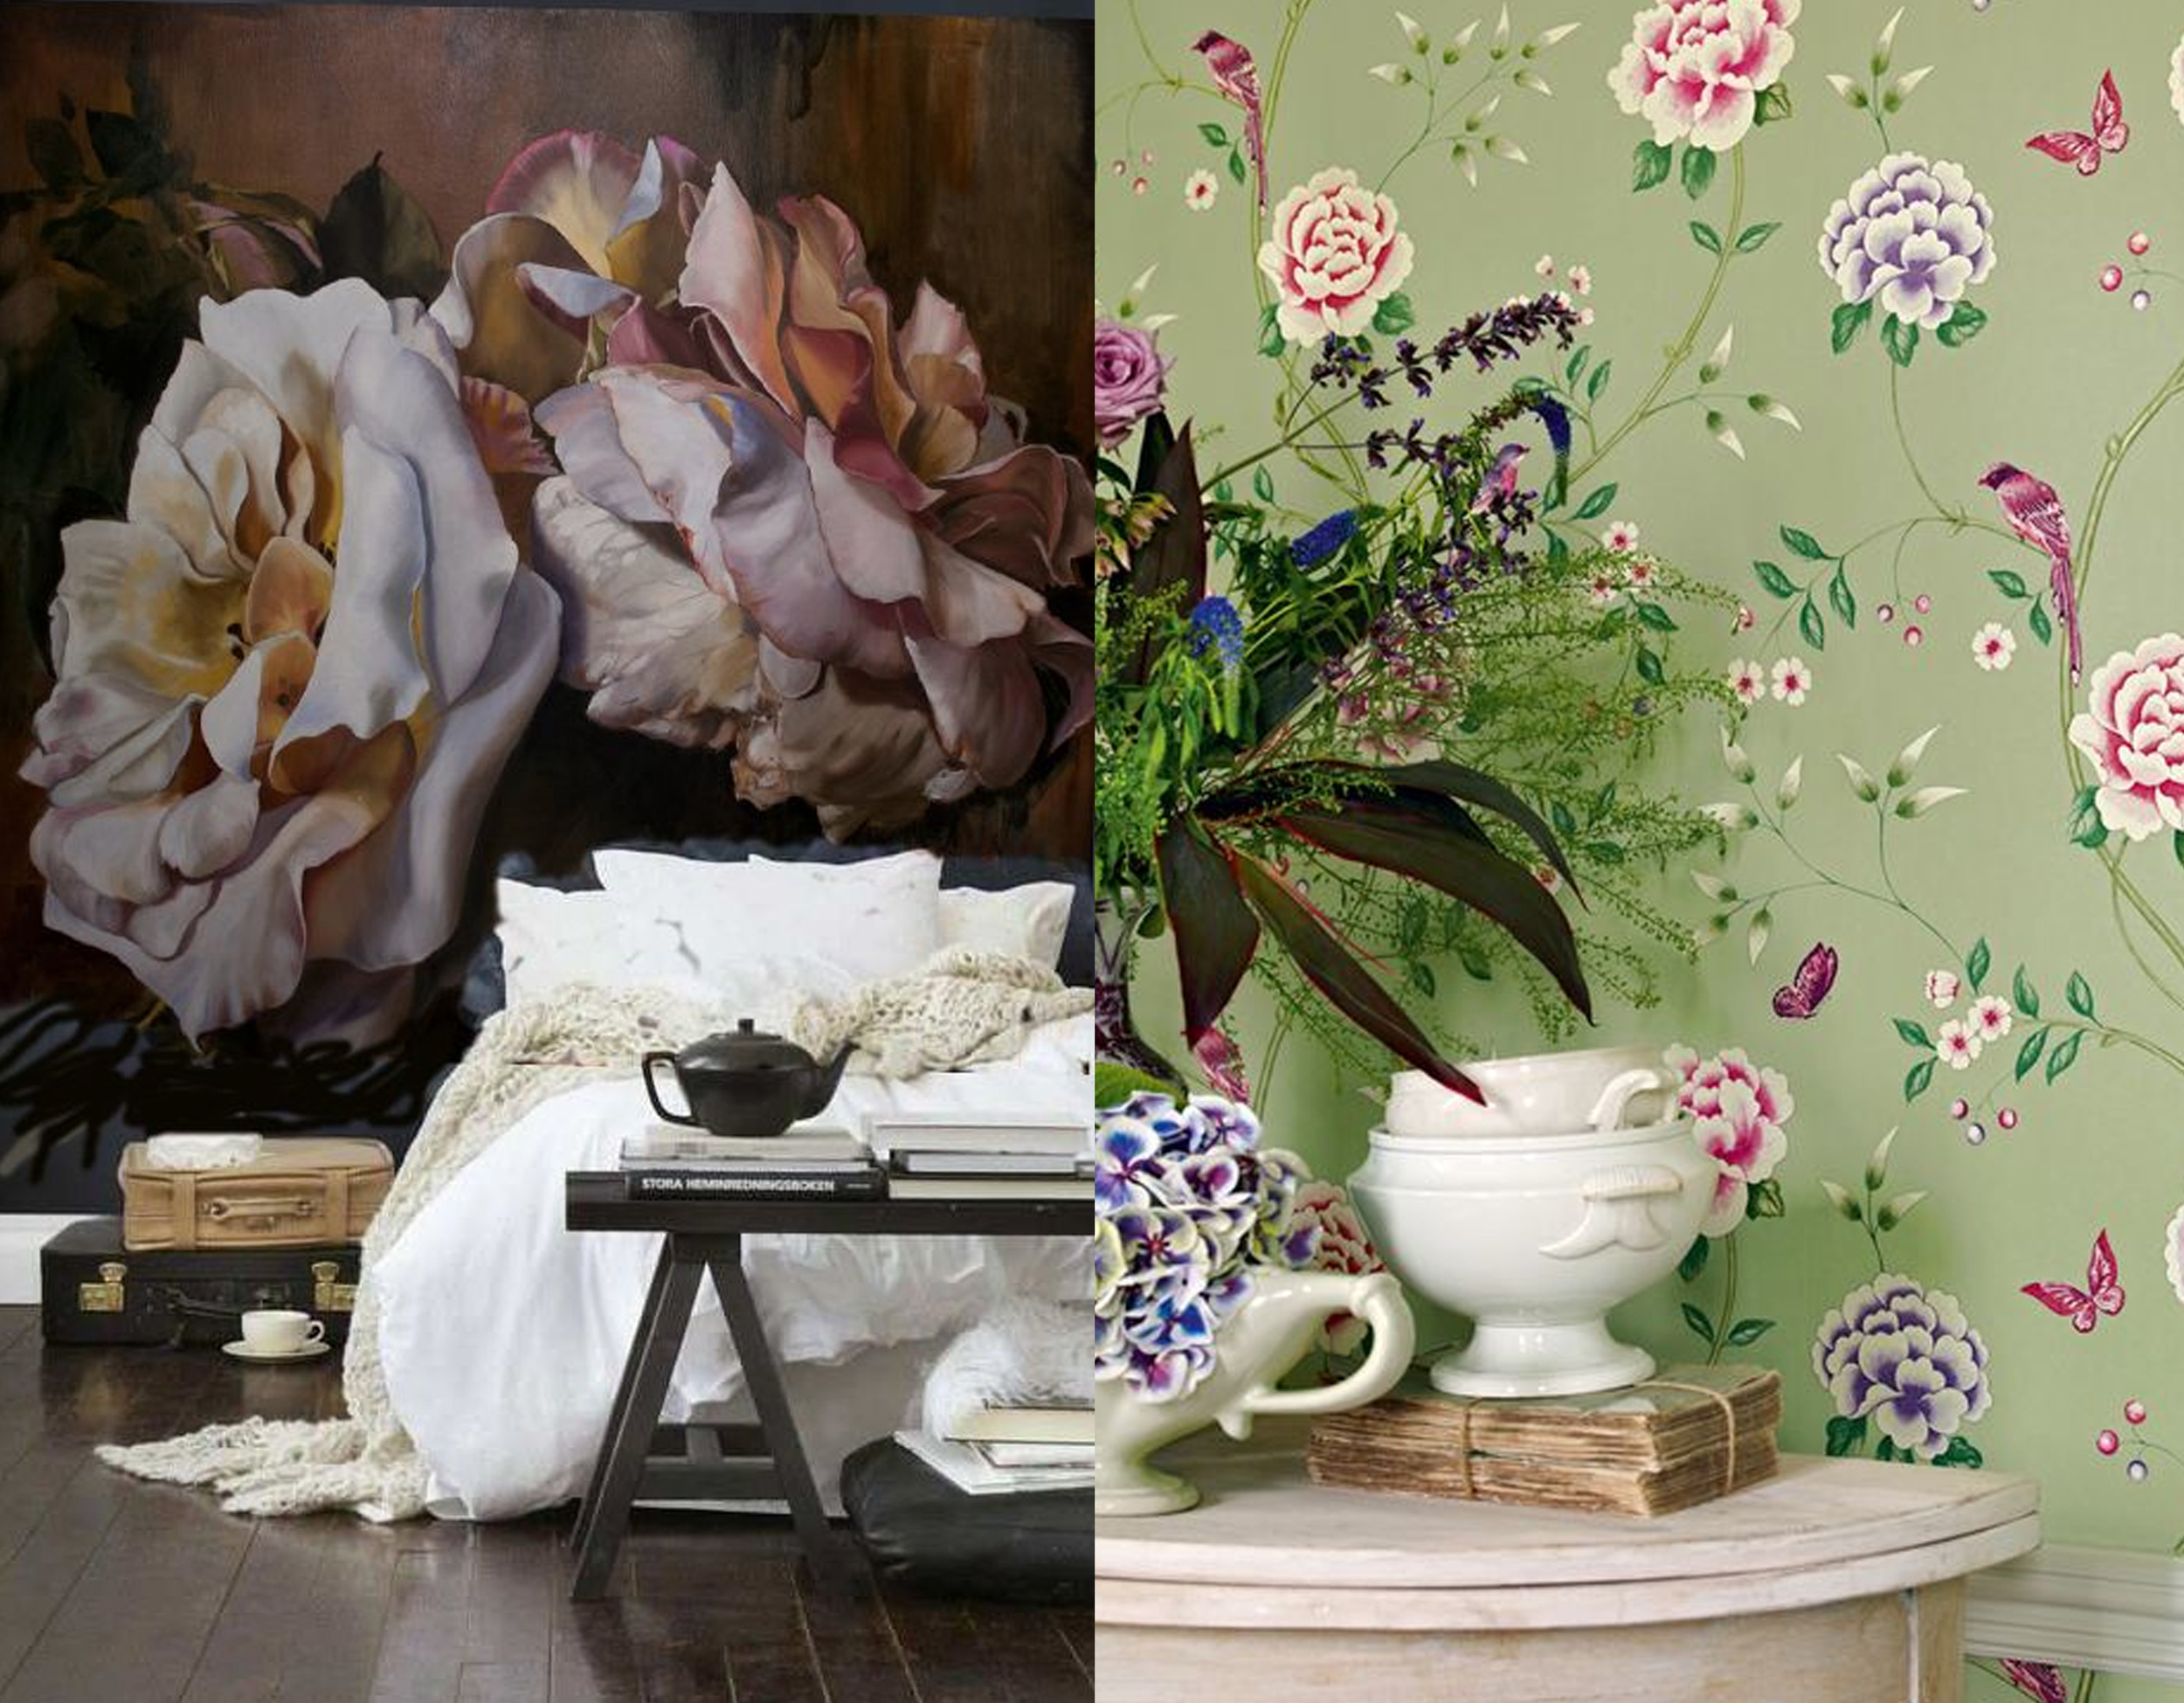 Huge scale digital printing of flowers versus the traditional flower printed wallpaper  Sanderson